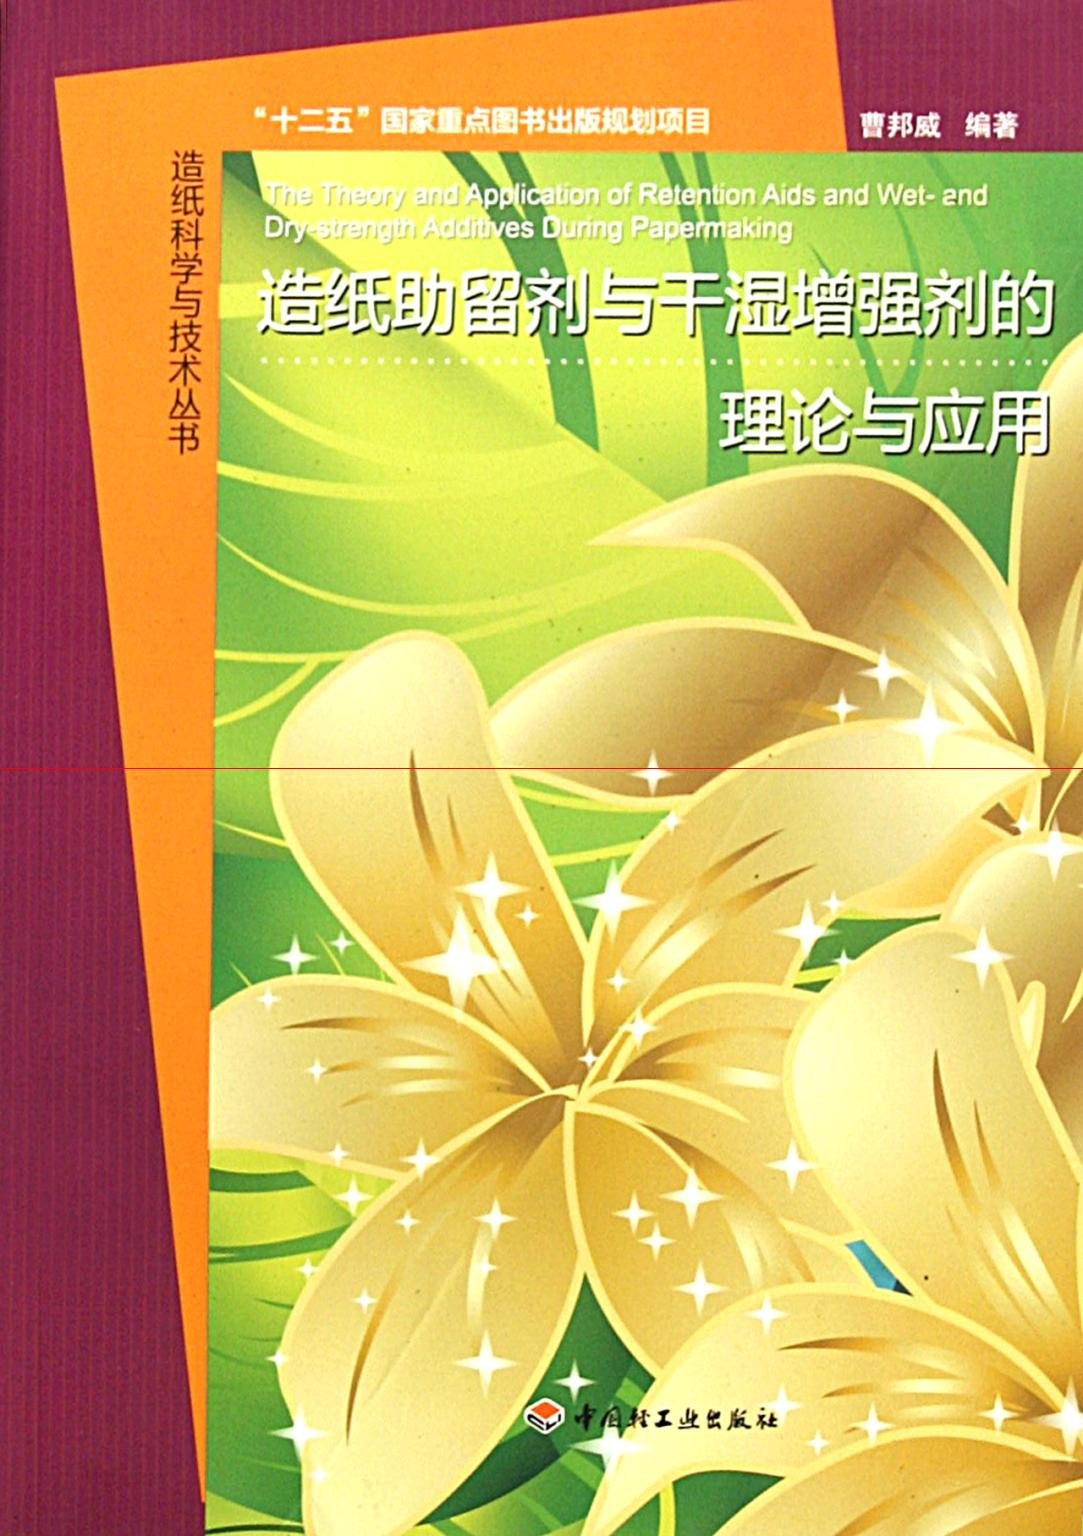 Theory and Applications of Papermaking Retention Aid and Drying Intensifier  Series Books of Paper Science and Technology (Chinese Edition) ebook